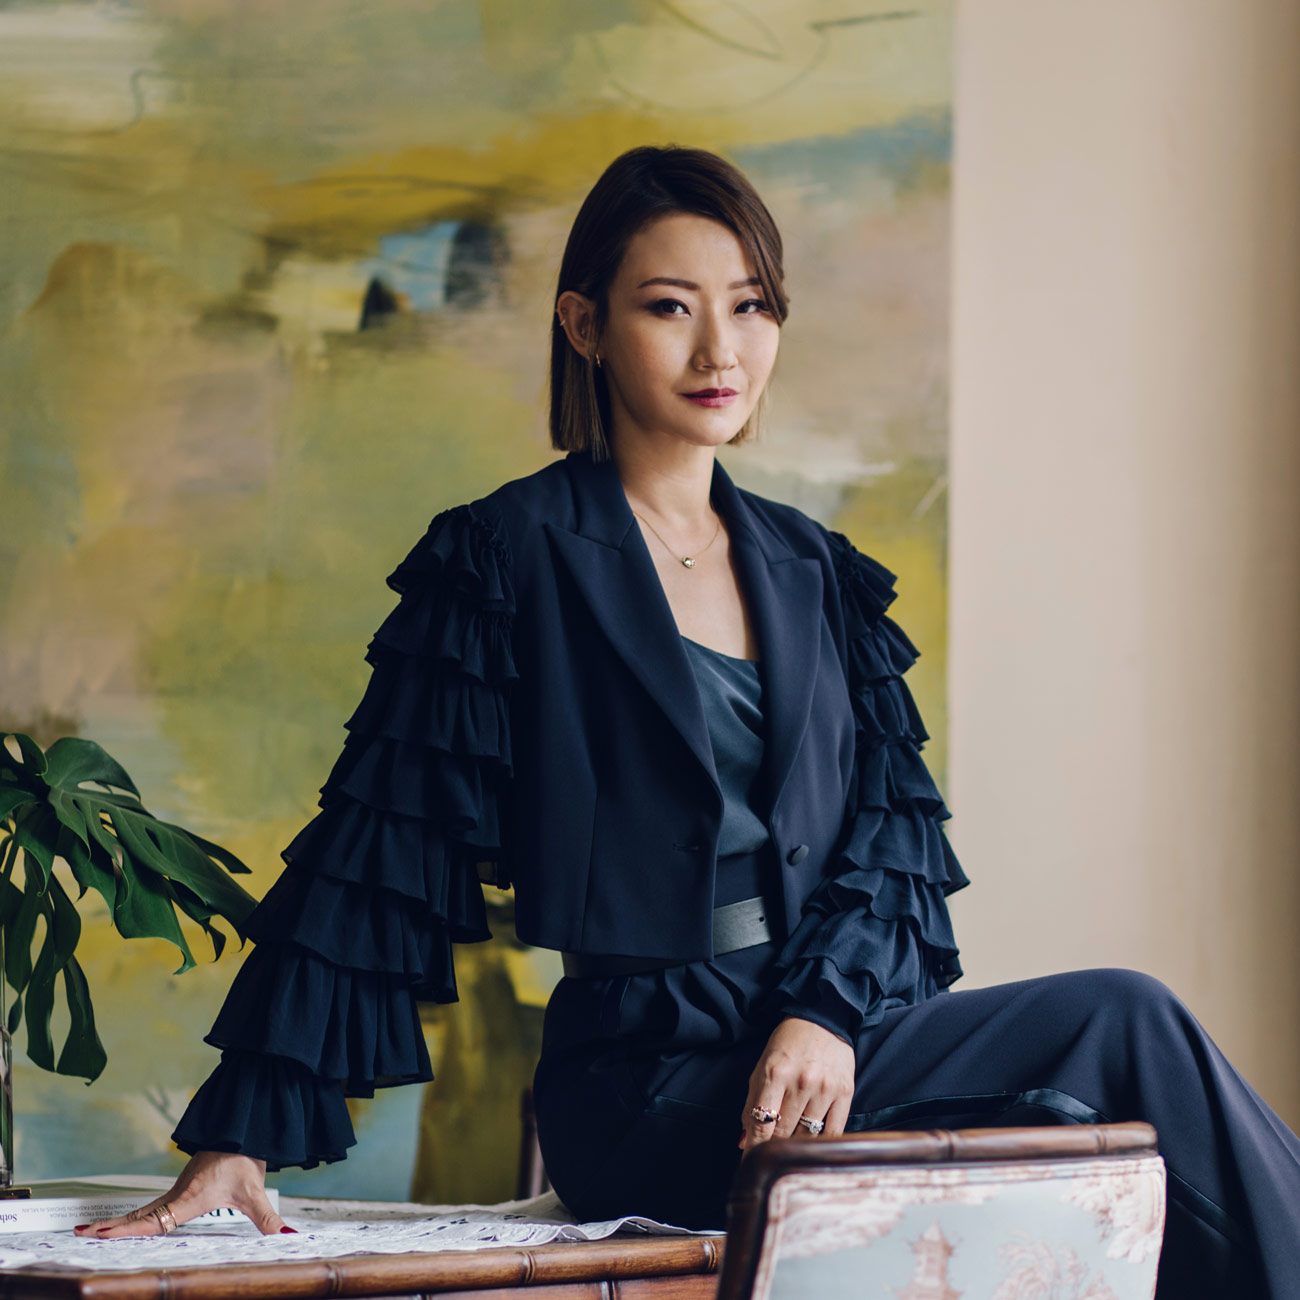 Maison Es founder Esther Sham perches on a mahjong table-turned-desk in her elegant Tai Hang home